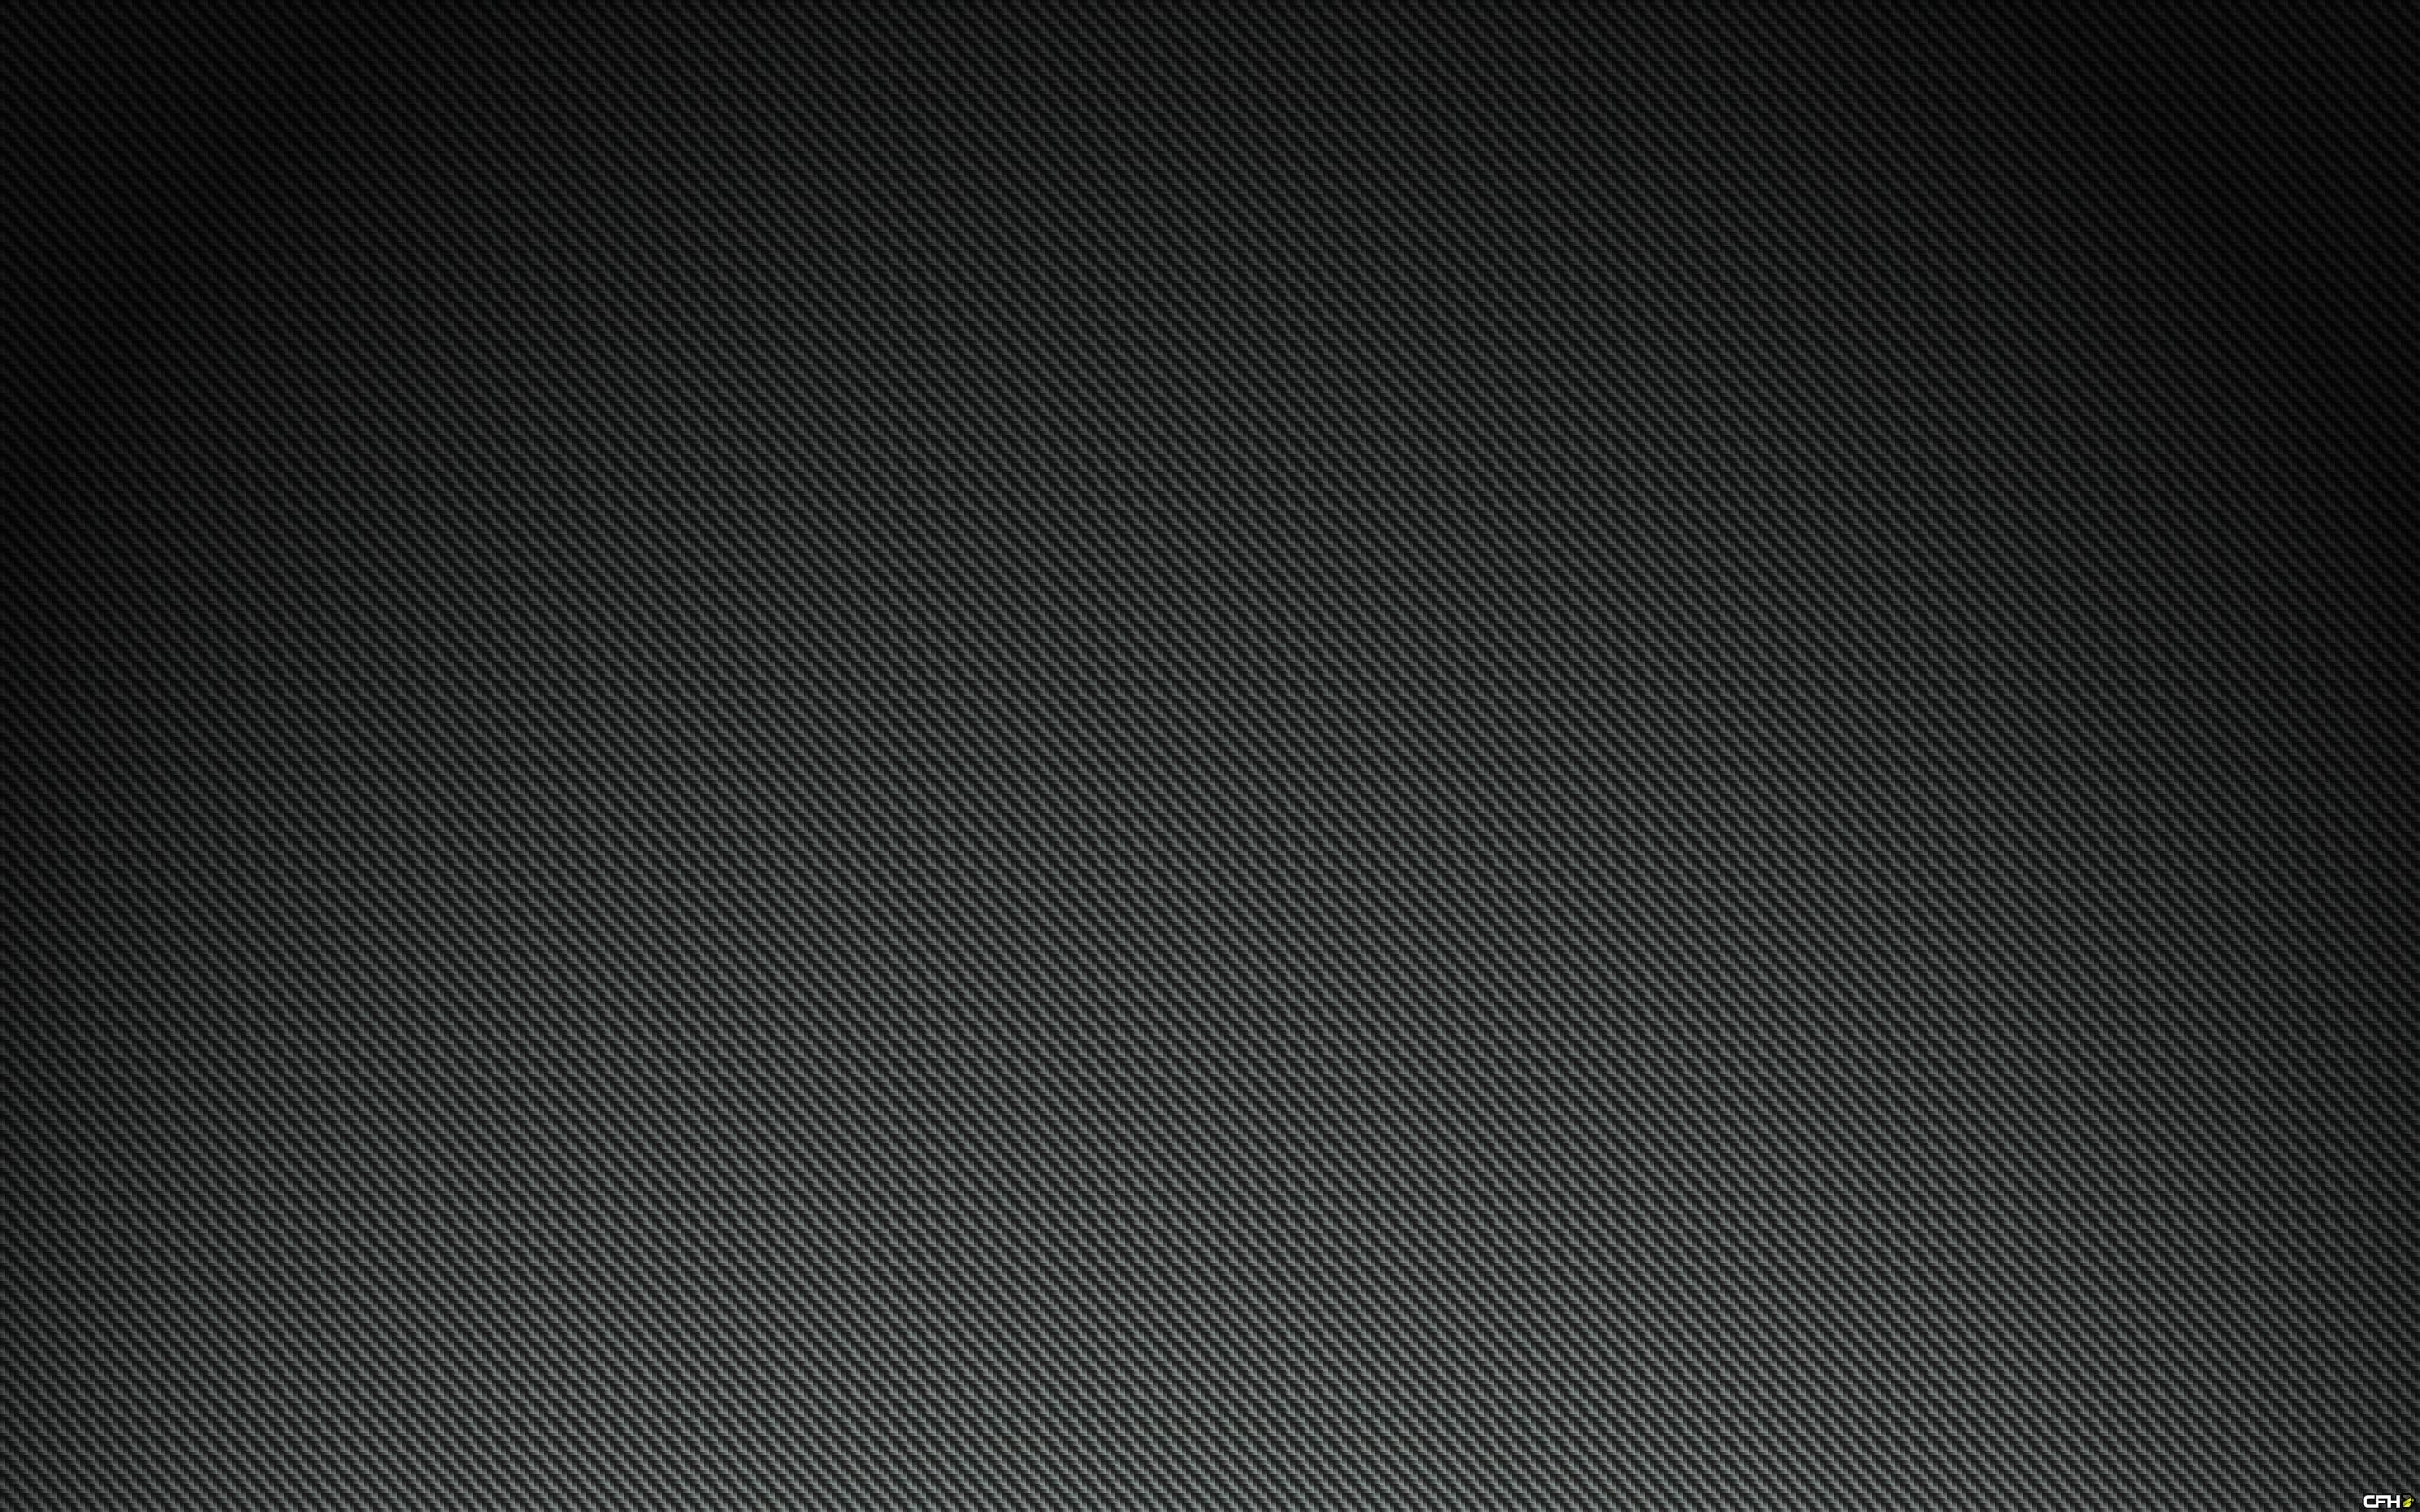 carbon fiber wallpaper group with 27 items